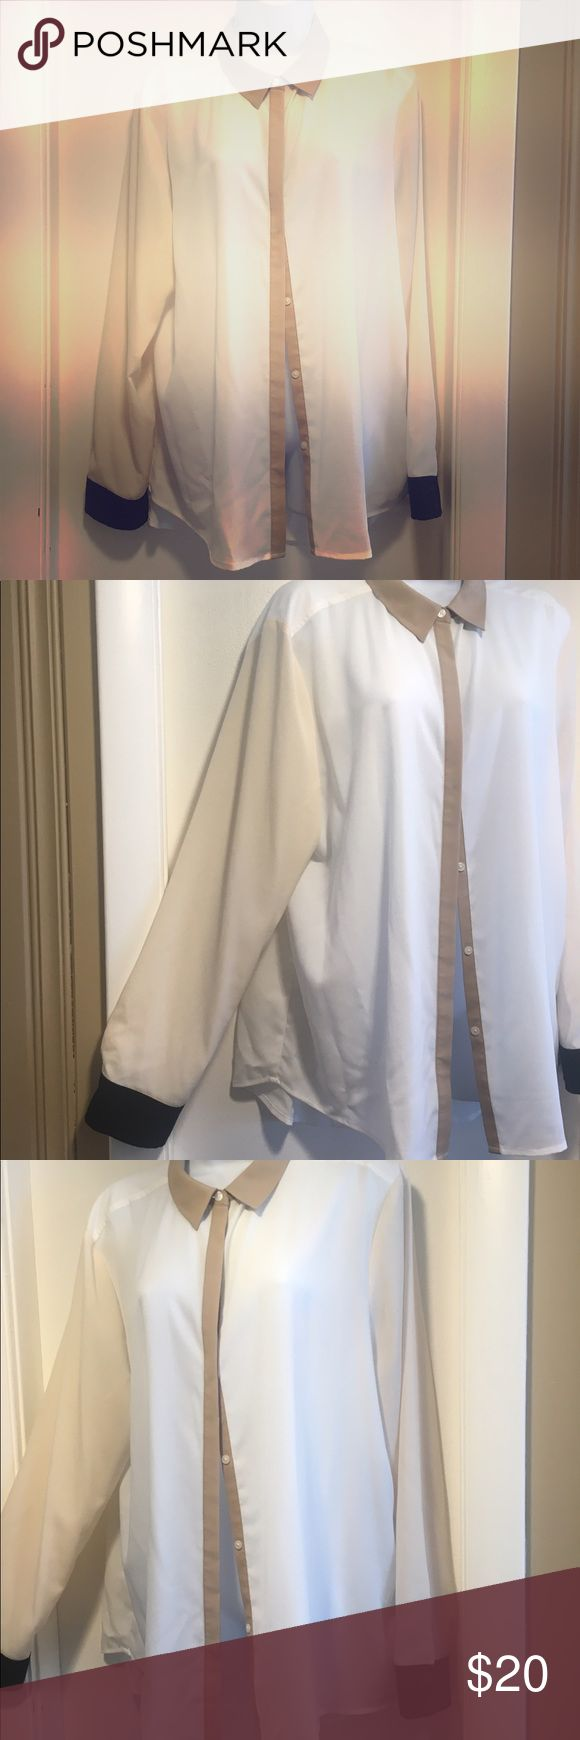 DKNYc XL Blouse Color block blouse - shear with matching camisole. White, with cream colored sleeves, black cuffs, khaki colored collar.  Worn 3 times!  In great shape.  Material is polyester (both shirt and detachable liner). DKNYC Tops Blouses